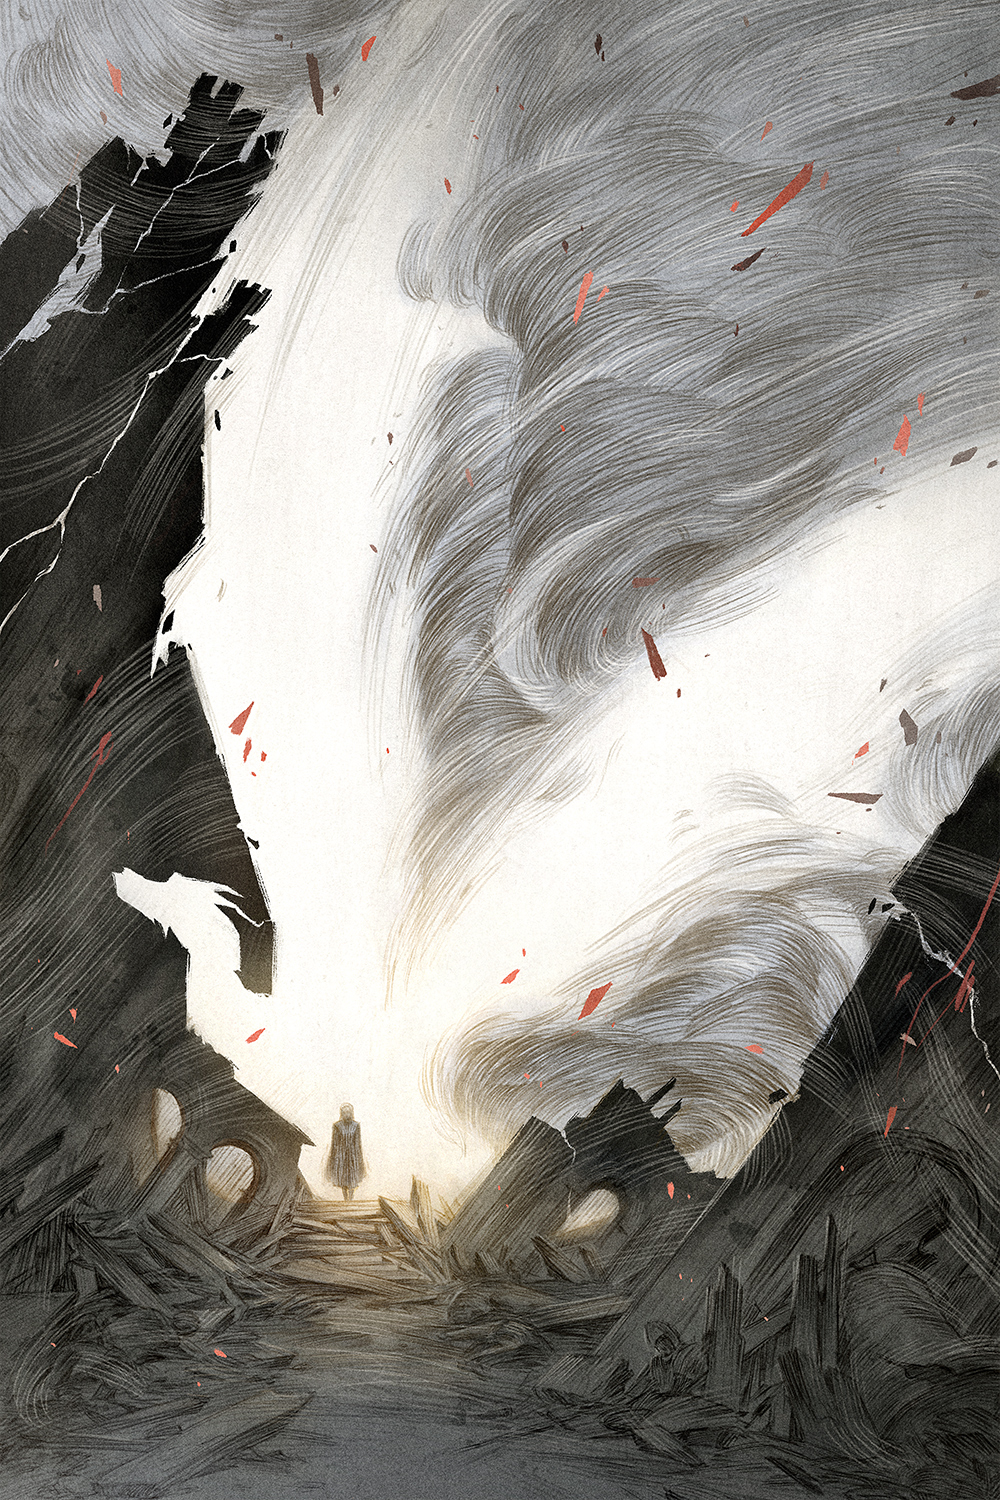 Queen of the Ashes Artwork by Rovina Cai